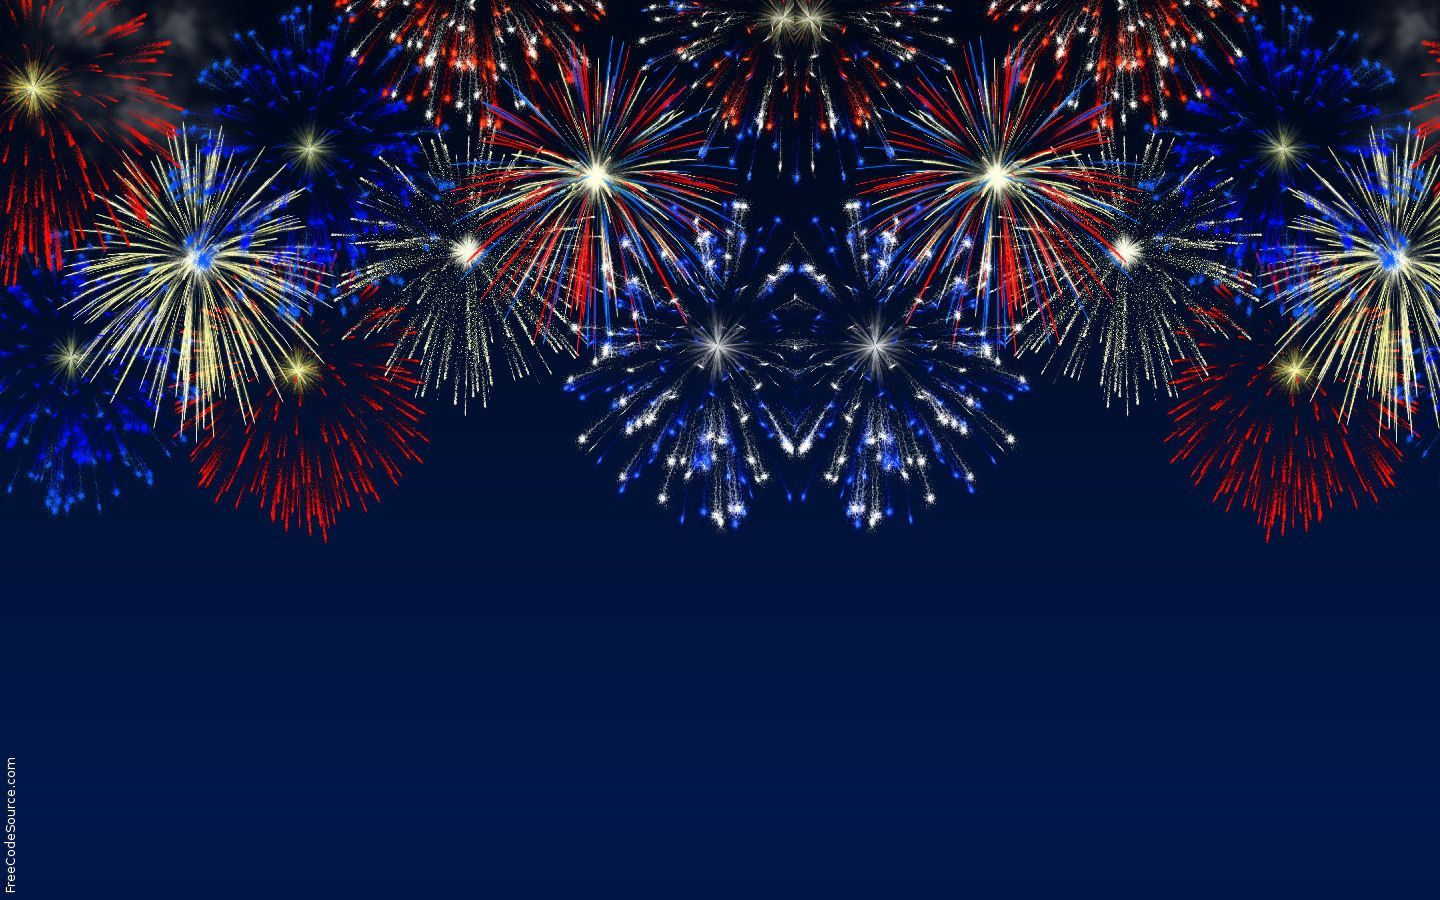 Fireworks Background - PowerPoint Backgrounds for Free ...